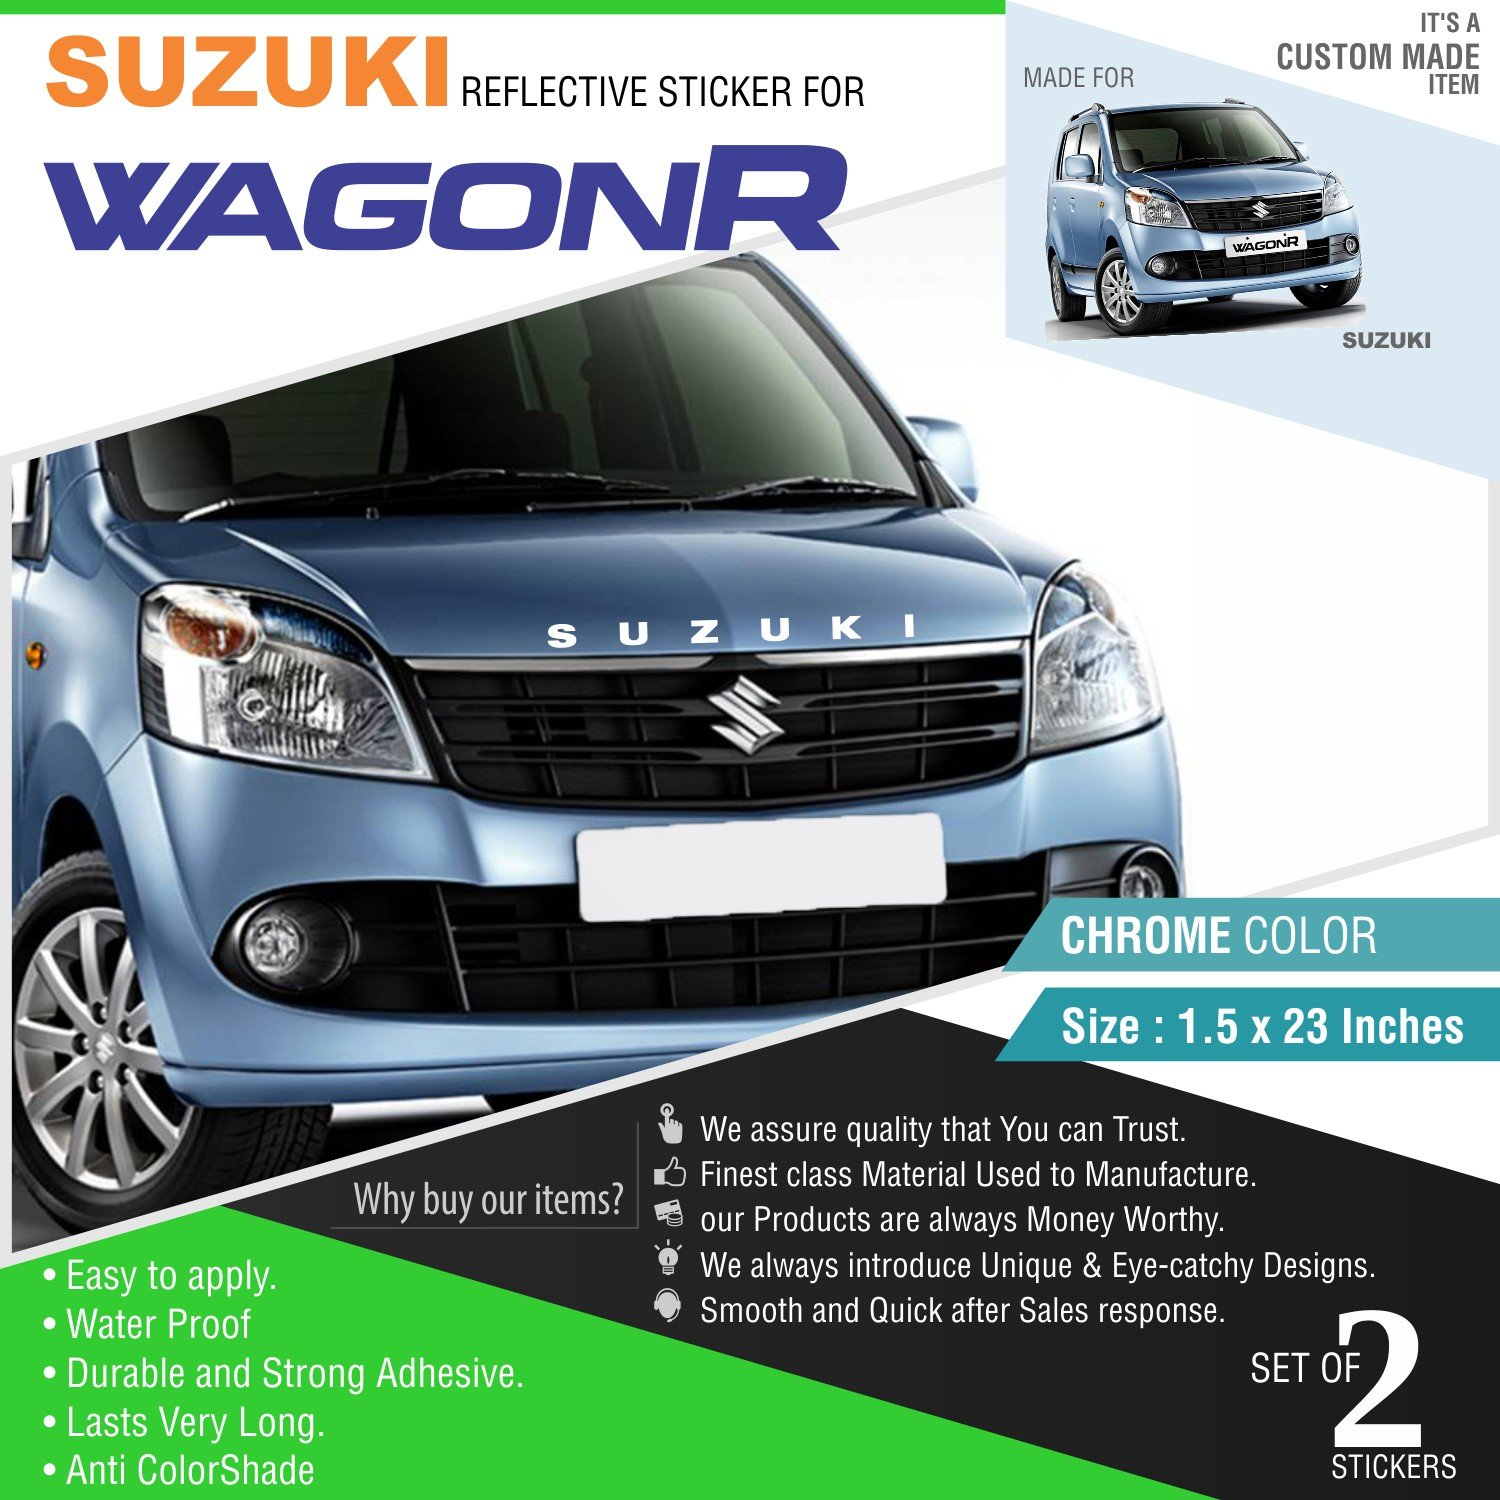 Carmetics suzuki reflective sticker for wagon r front and rear chrome vinyl amazon in car motorbike